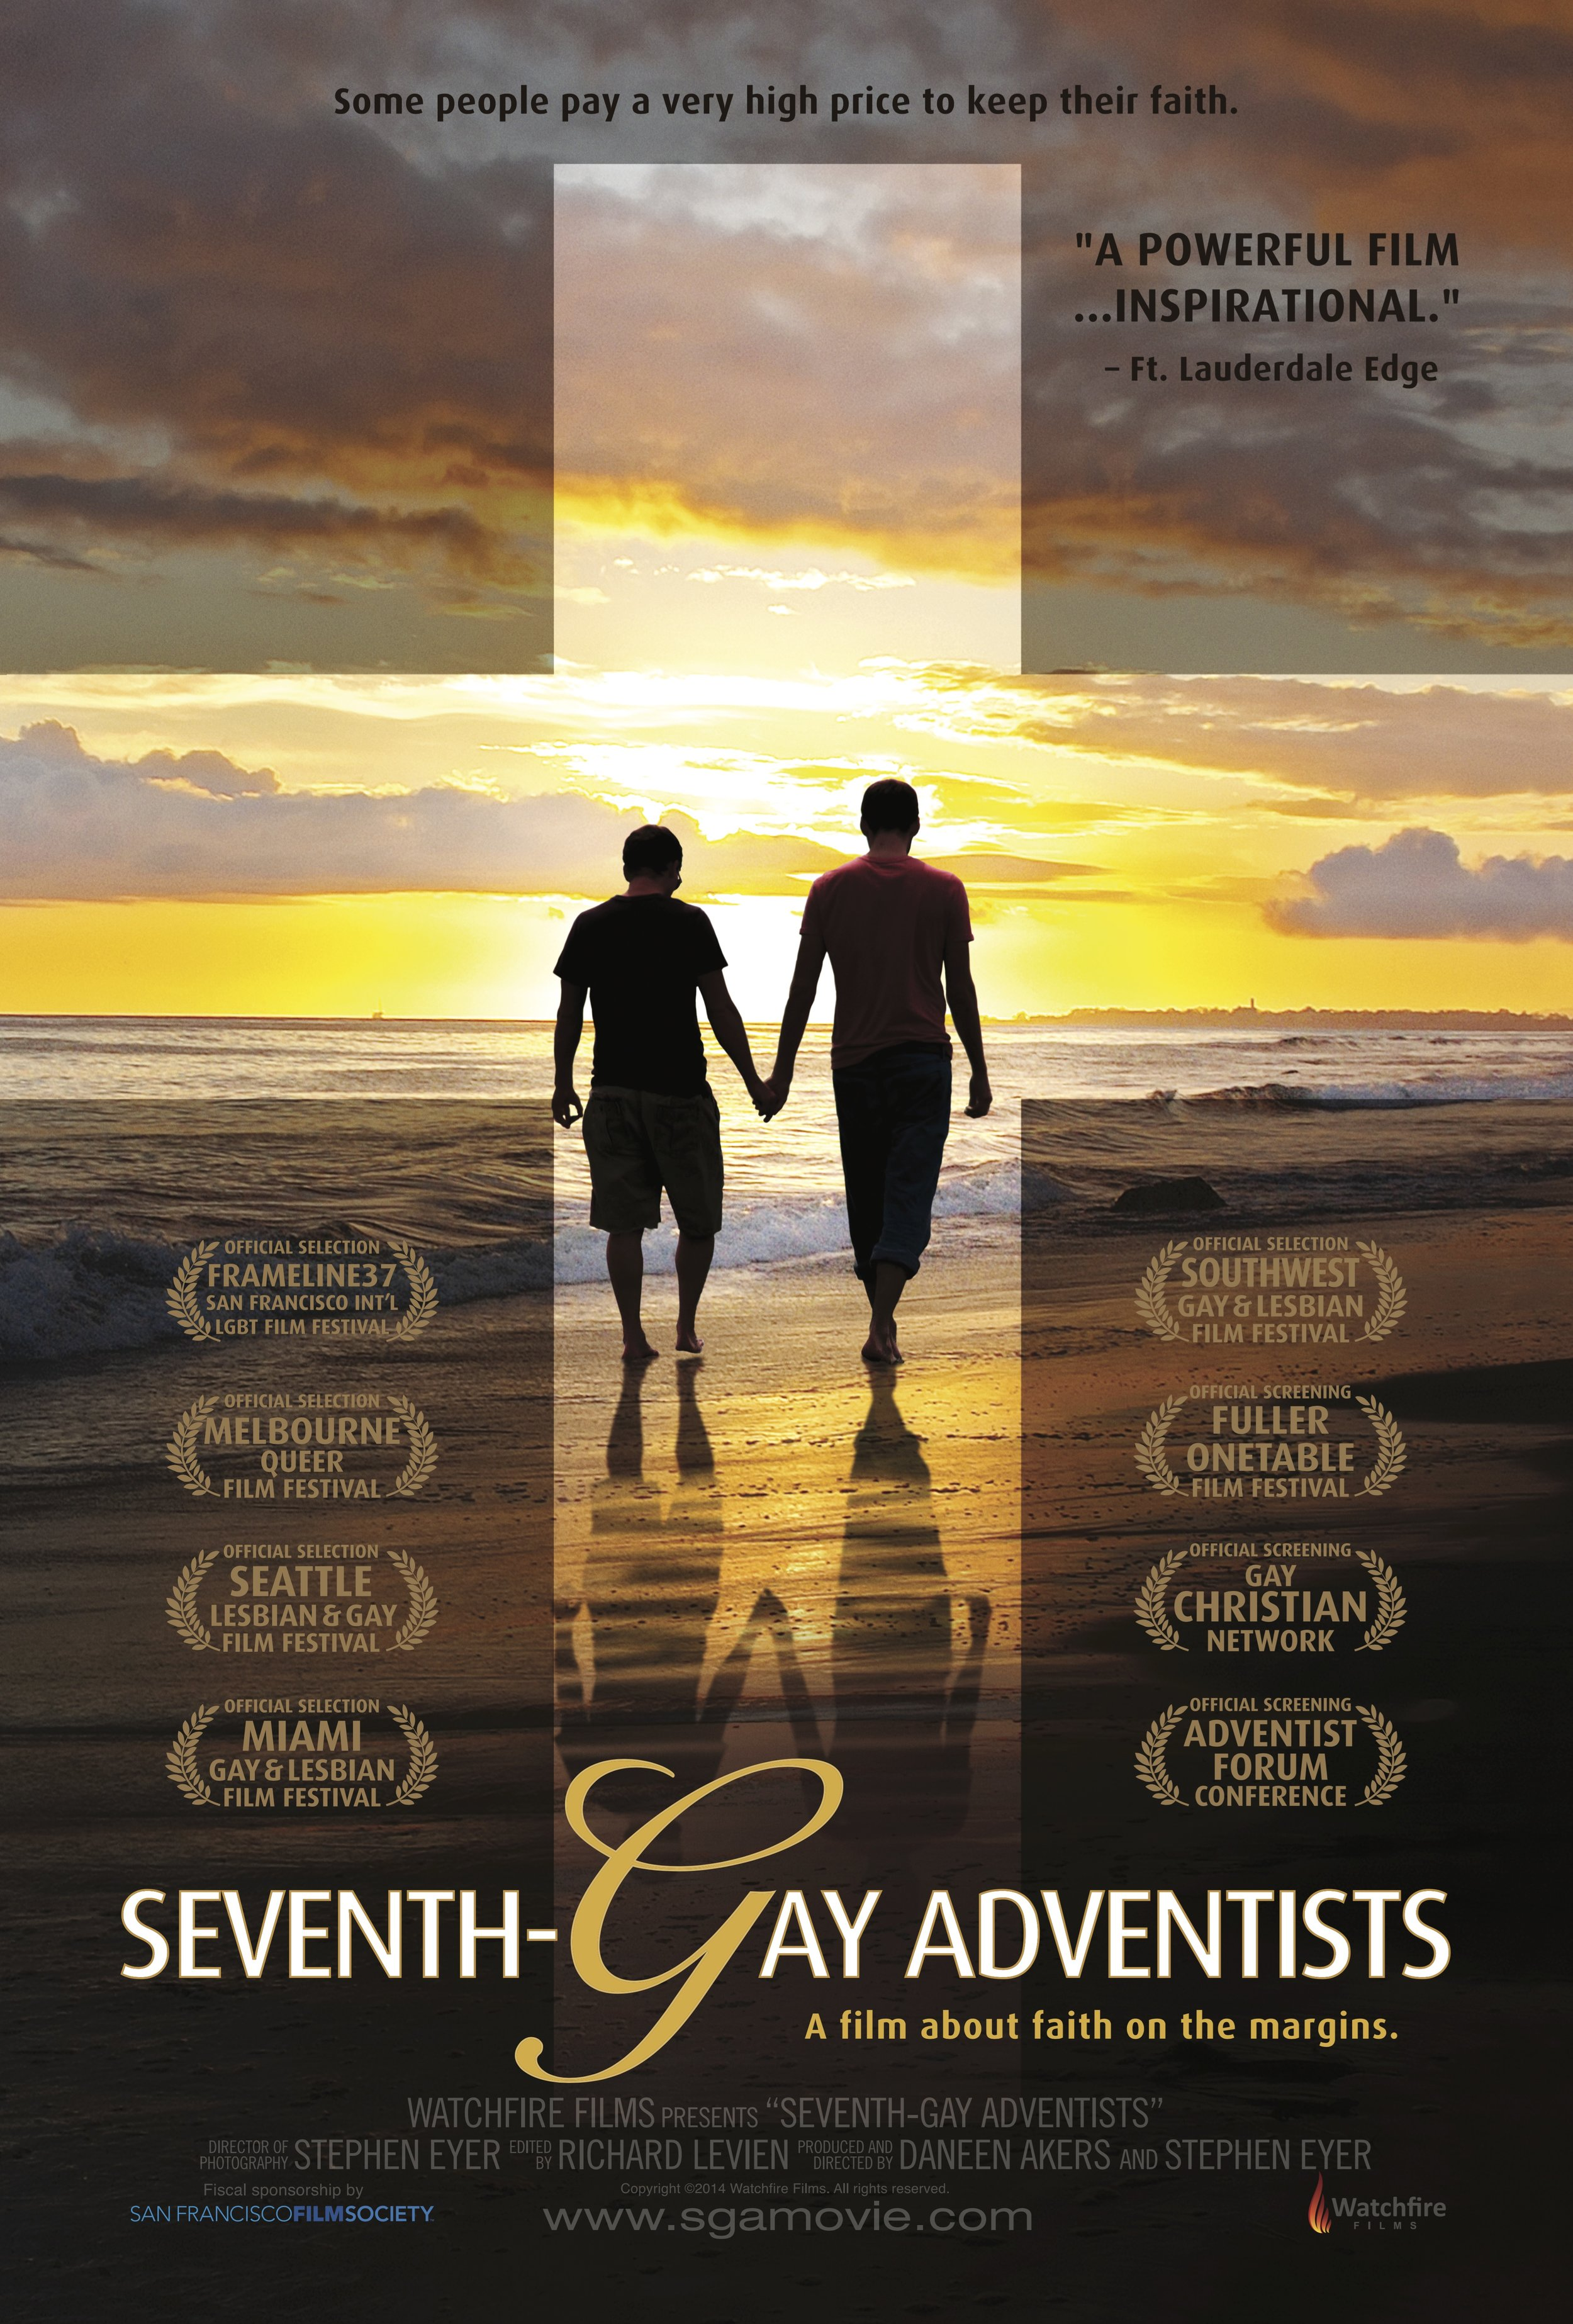 Seventh-Gay Adventists Poster Image